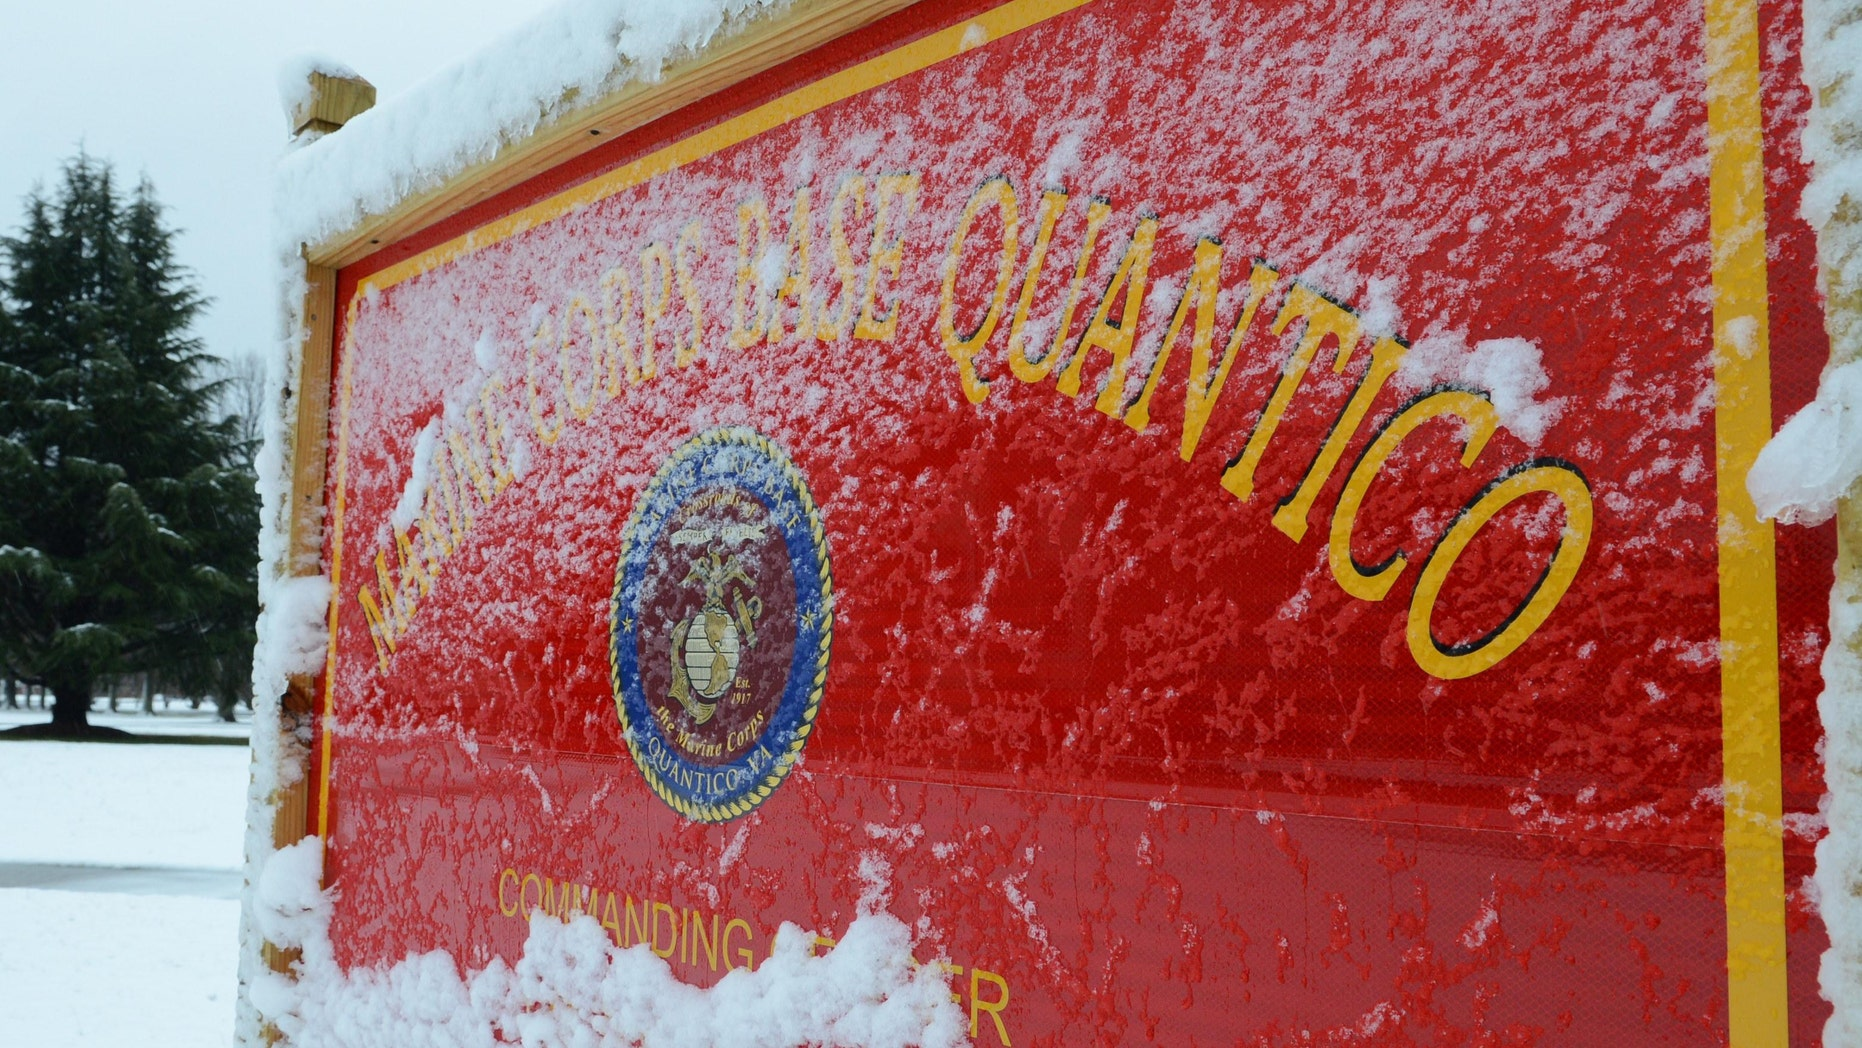 This image provided by the U.S. Marine Corps shows snow covering one of Marine Corps Base Quanticoâs many signs Wednesday March 6, 2013. One person was dead after a shooting at Marine Base Quantico and authorities were in a standoff early Friday March 22, 2013 with the suspect, who had barricaded himself in barracks, base spokesman Lt. Agustin Solivan said. Solivan said they believe the suspect, whose name wasn't released, is a staff member at the officer candidate school at the base. No information on the victim was immediately released. (AP Photo/US Marine Corps, Cpl. Antwaun L. Jefferson)